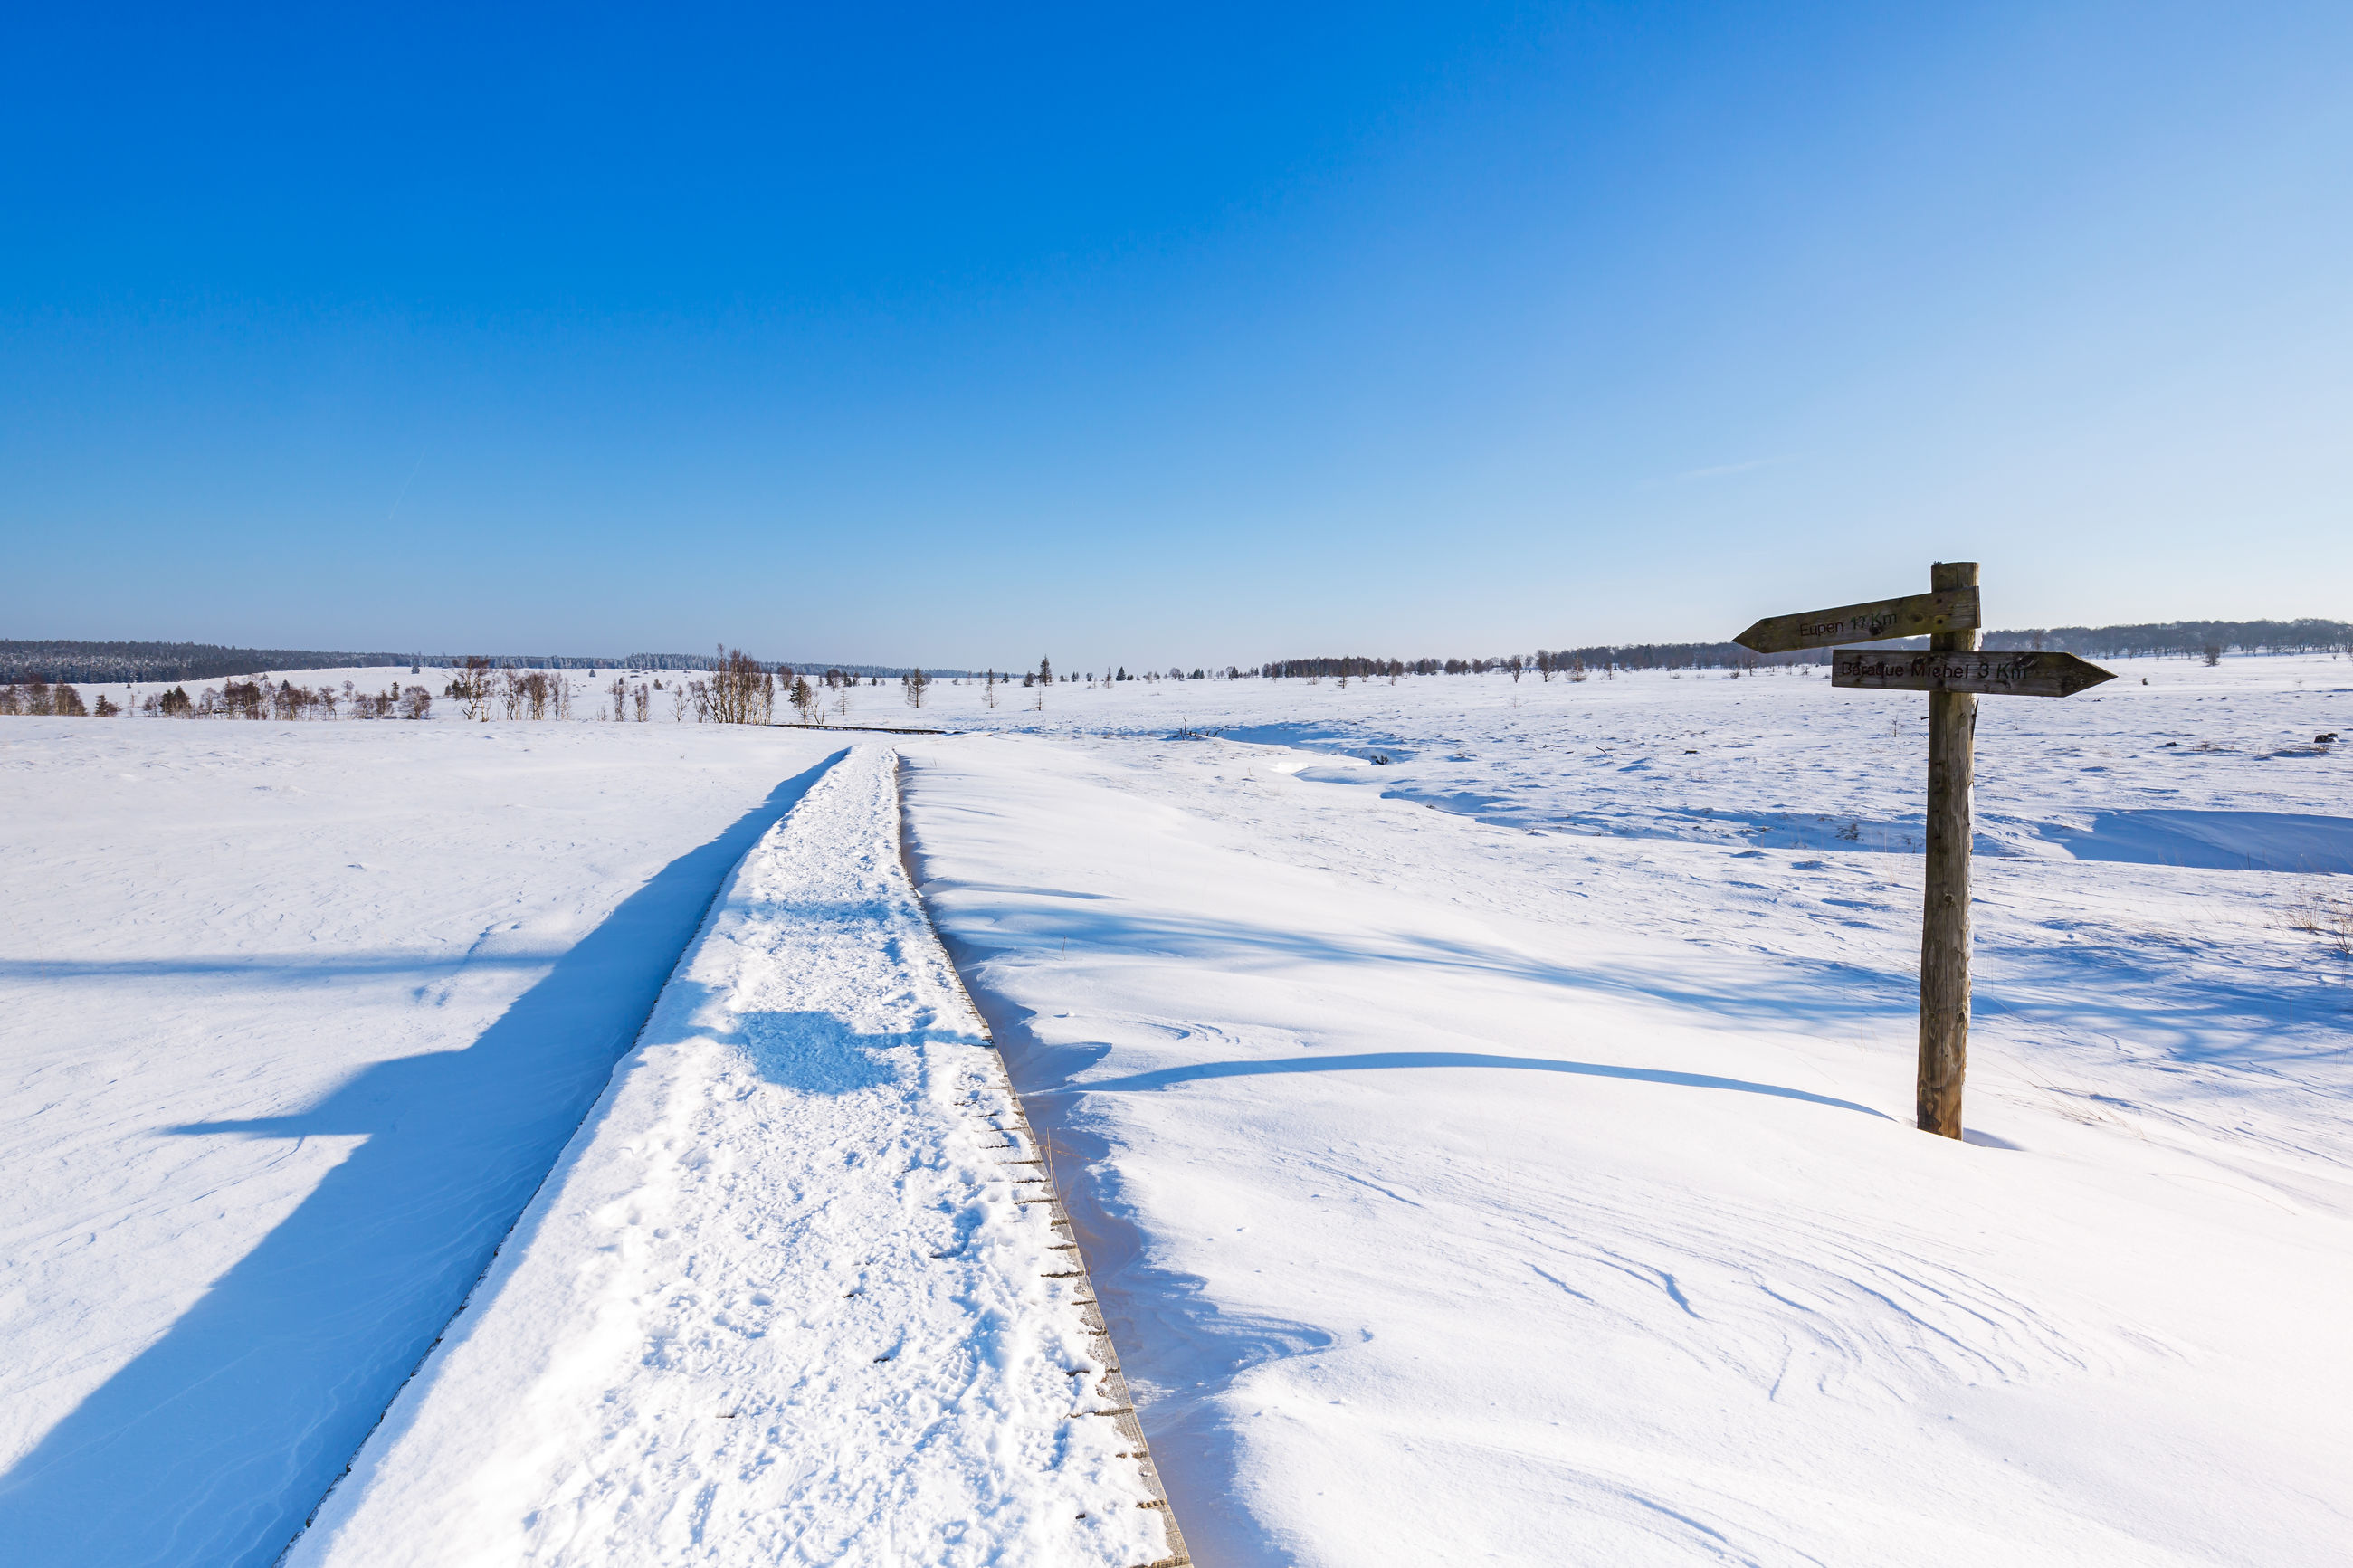 SNOW COVERED FIELD AGAINST CLEAR BLUE SKY